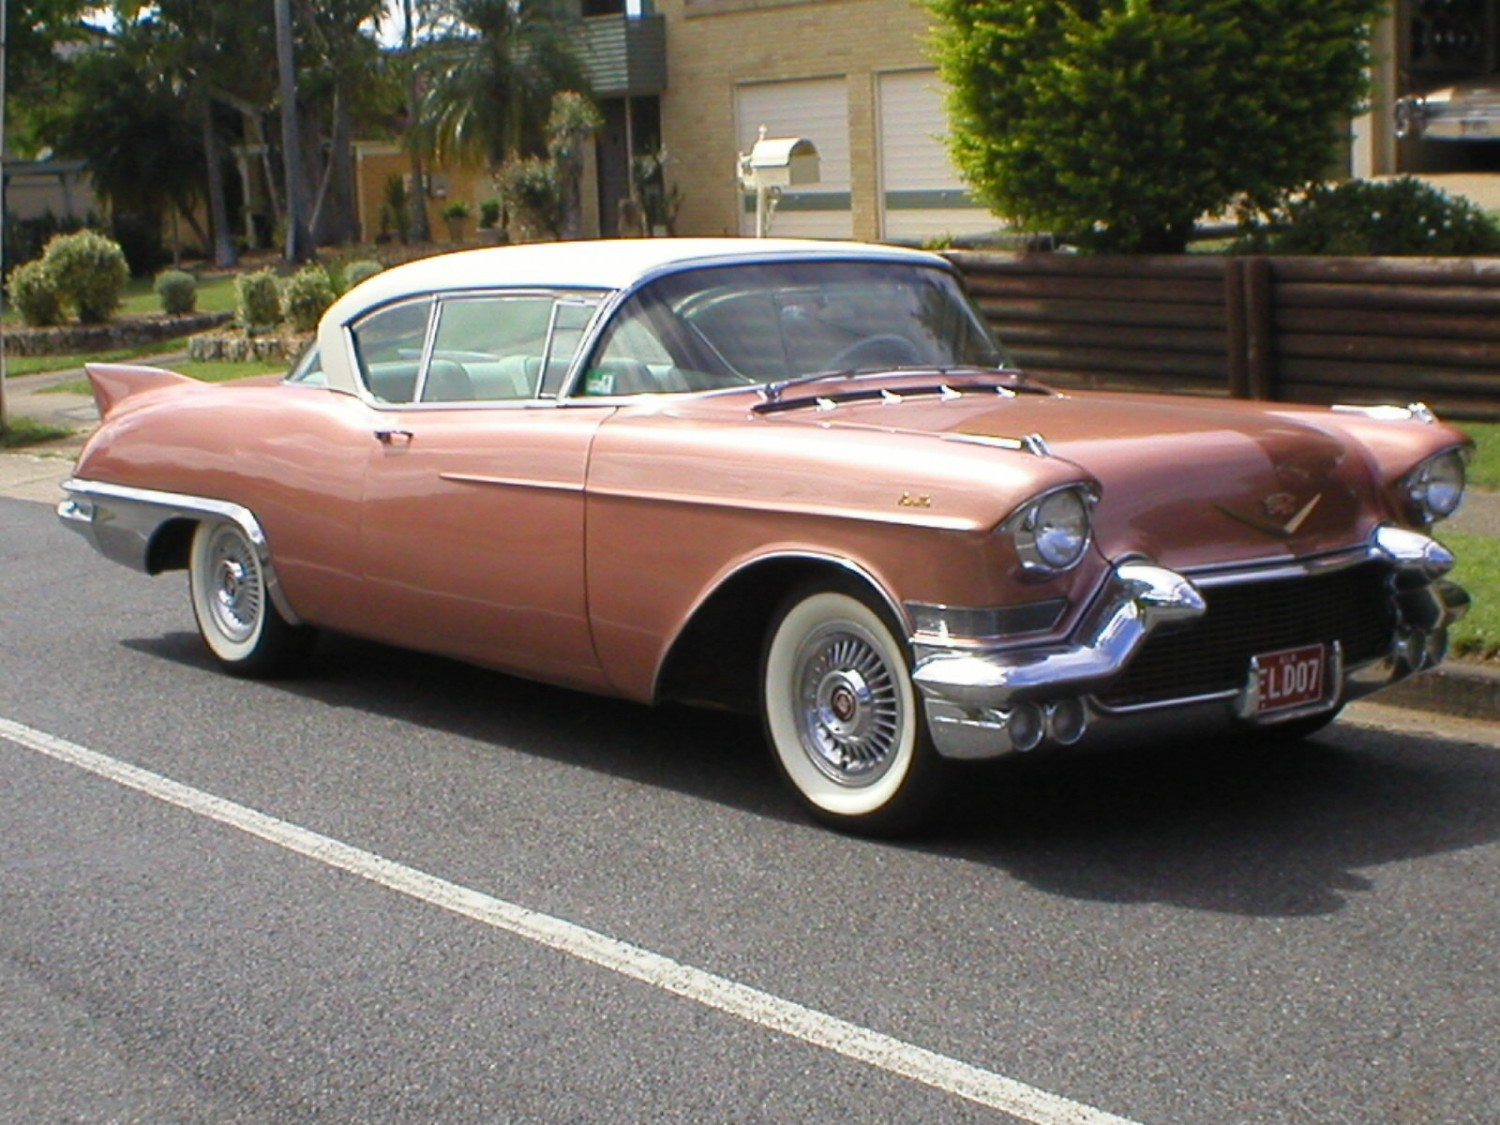 1957 Cadillac Seville - curly819 - Shannons Club